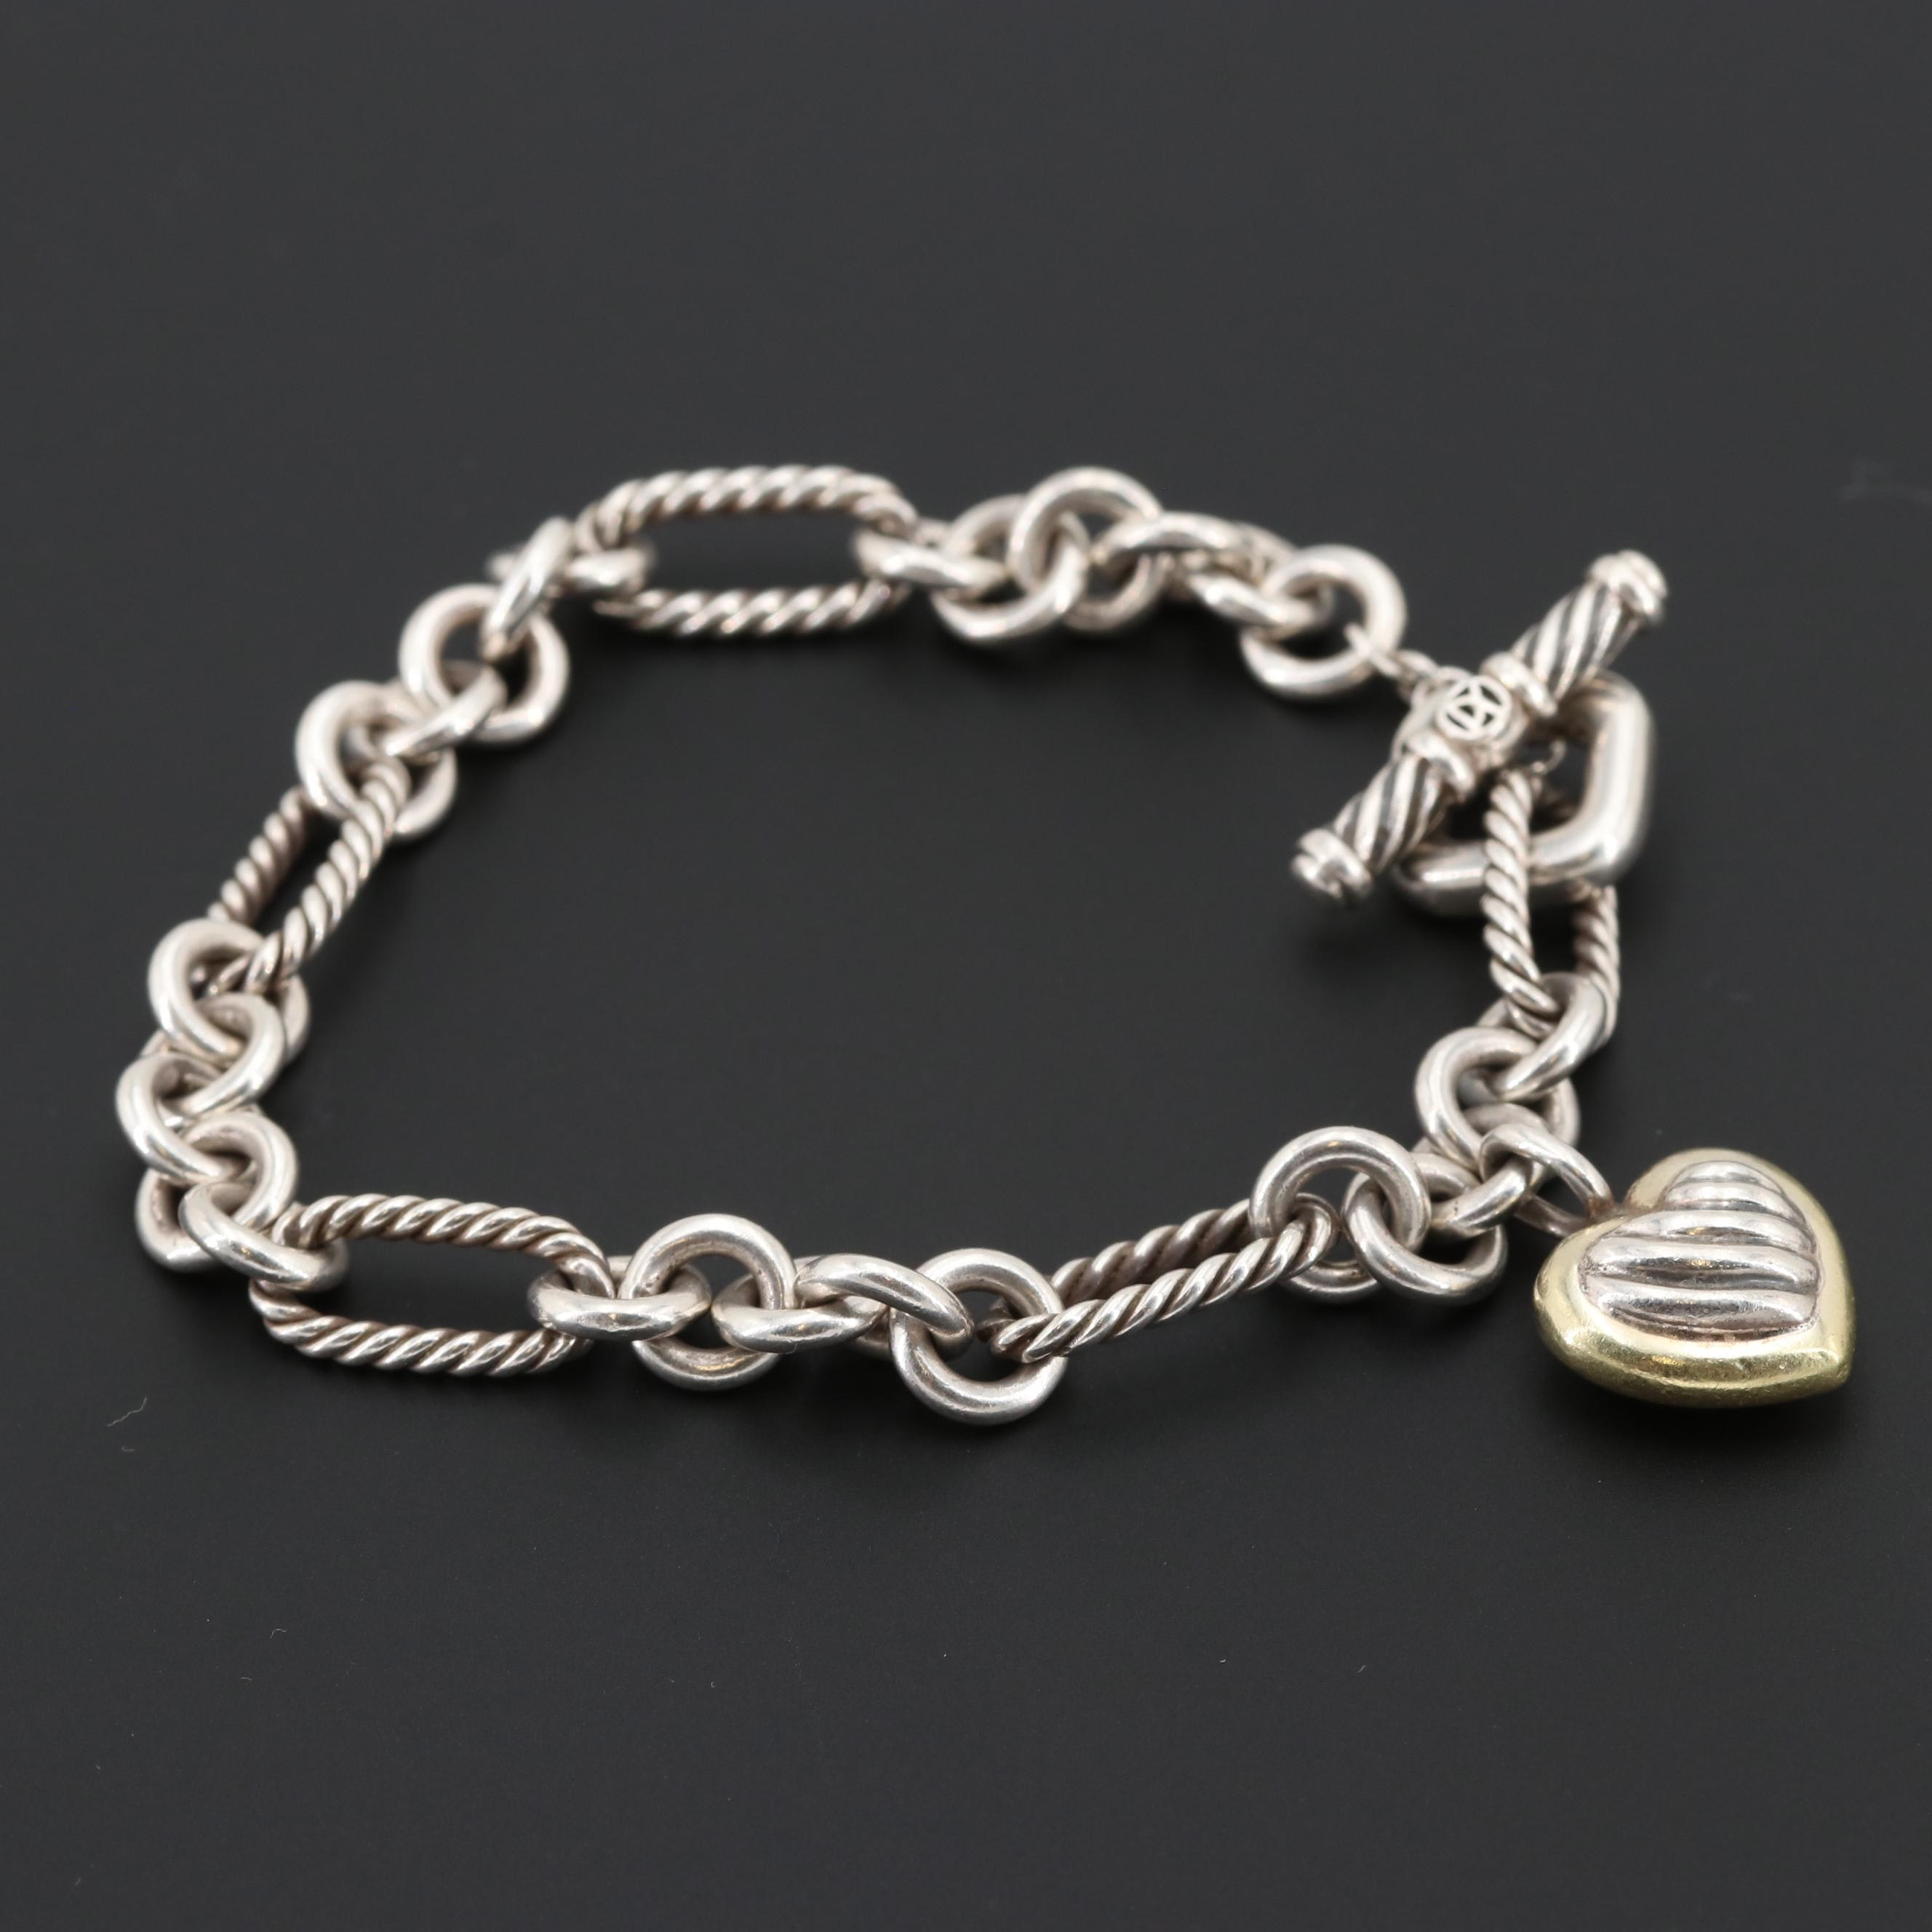 David Yurman Sterling Silver Heart Charm Bracelet with 18K Yellow Gold Accent